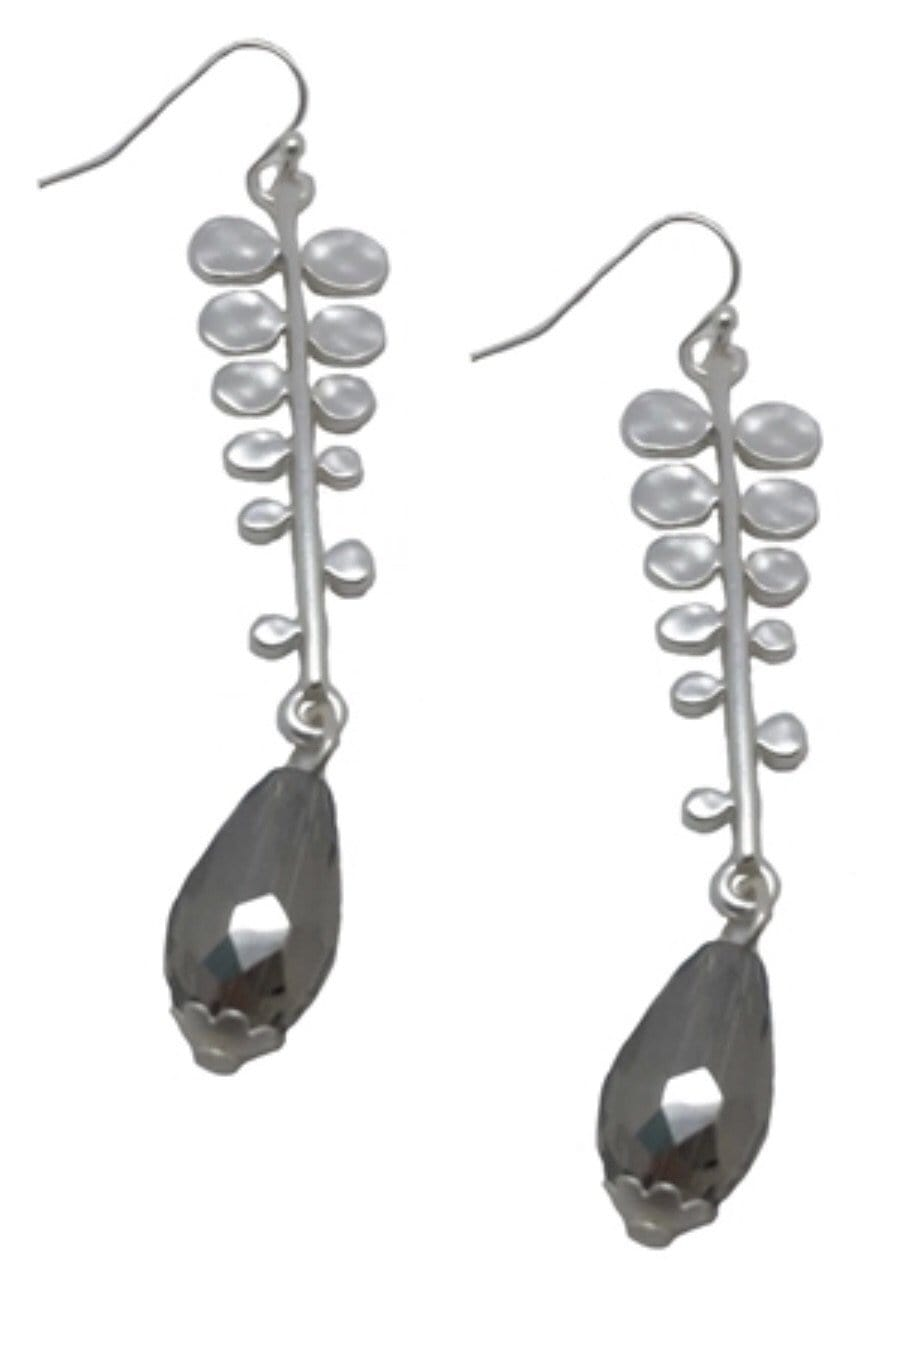 EARRING Grey Crystal Fern Earrings - Chloe Dao